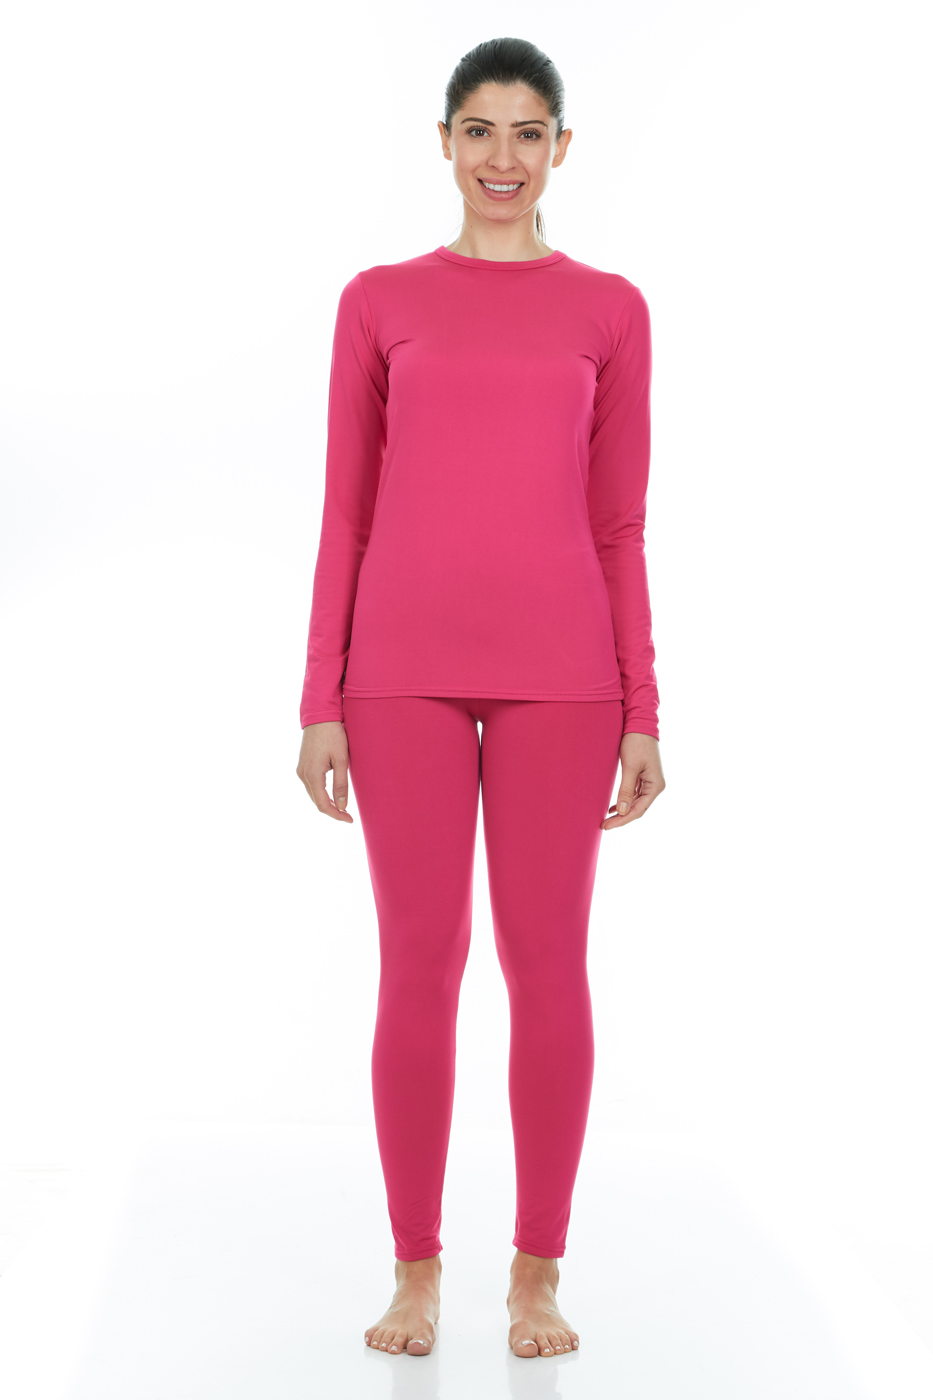 ac4dce12 Thermajane - Thermajane Women's Ultra Soft Thermal Underwear Long Johns Set  With Fleece Lined (X-Small, White) - Walmart.com